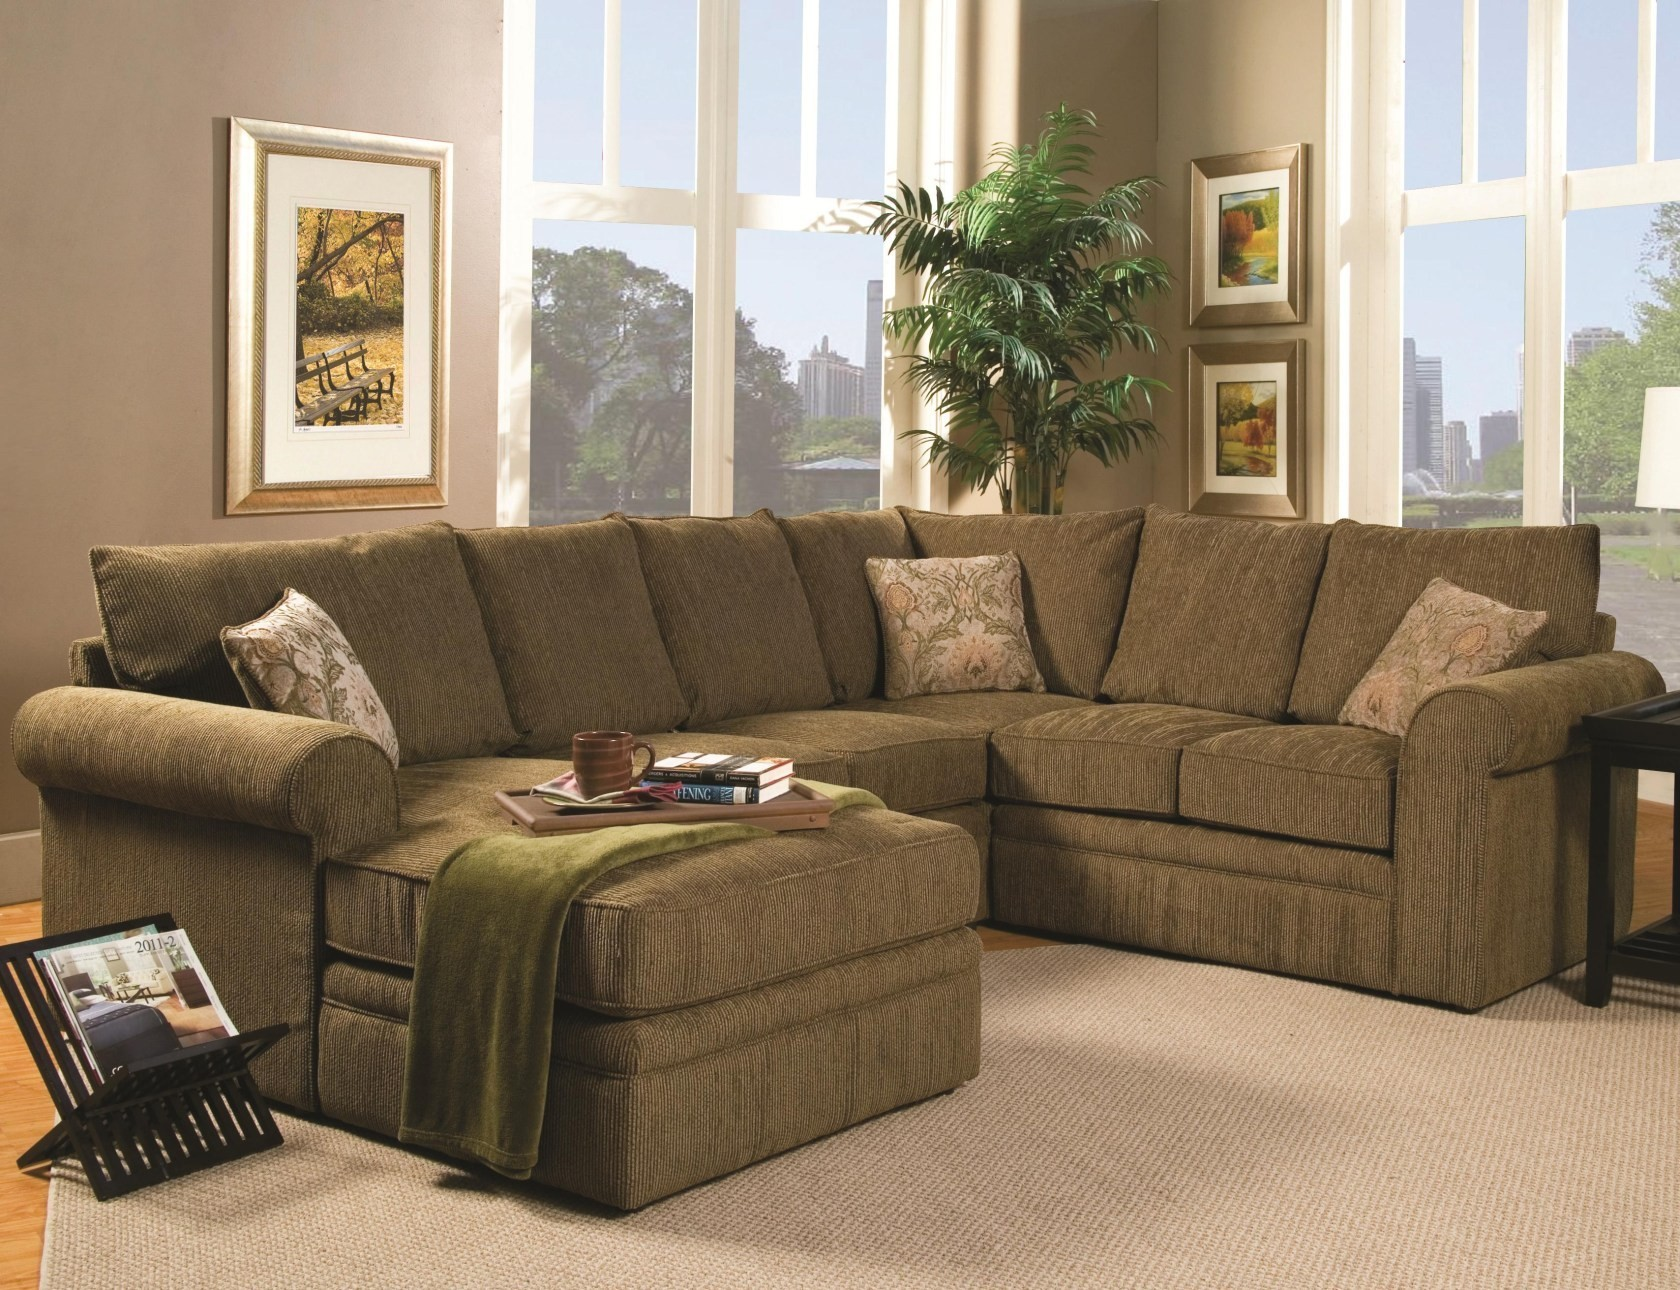 Cute Couch Covers with Cushions for Sectionals  for Living Room: Sofa Covers For Sectionals